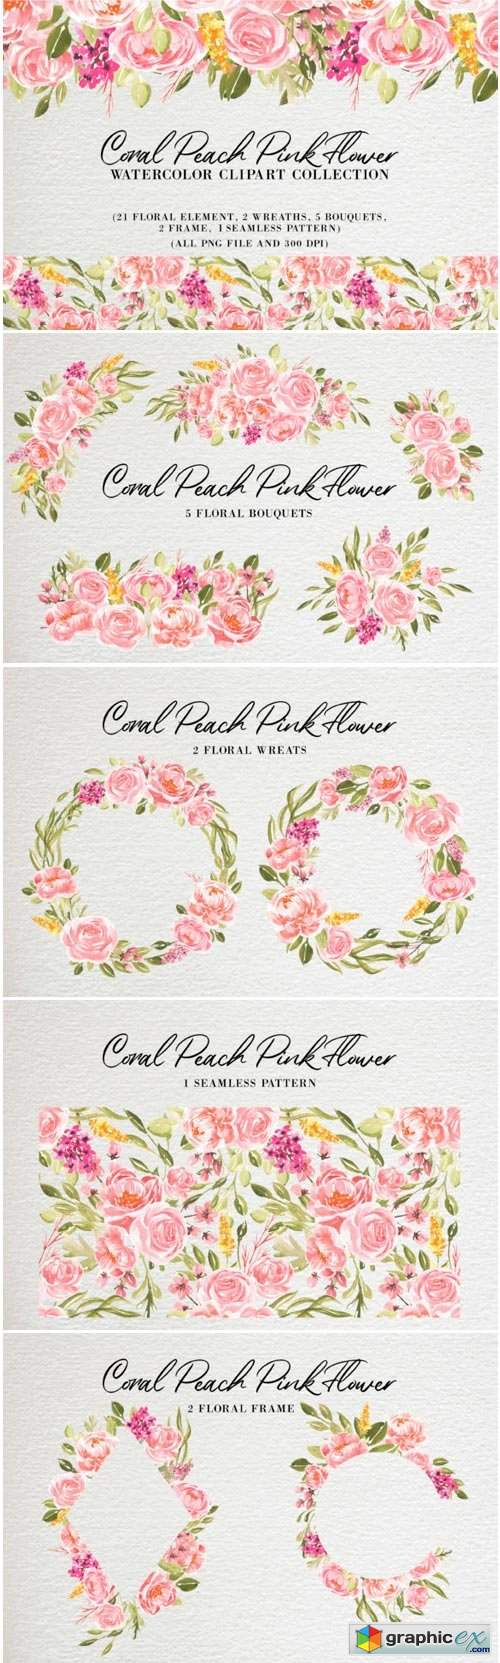 Coral Peach Pink Flower Watercolor